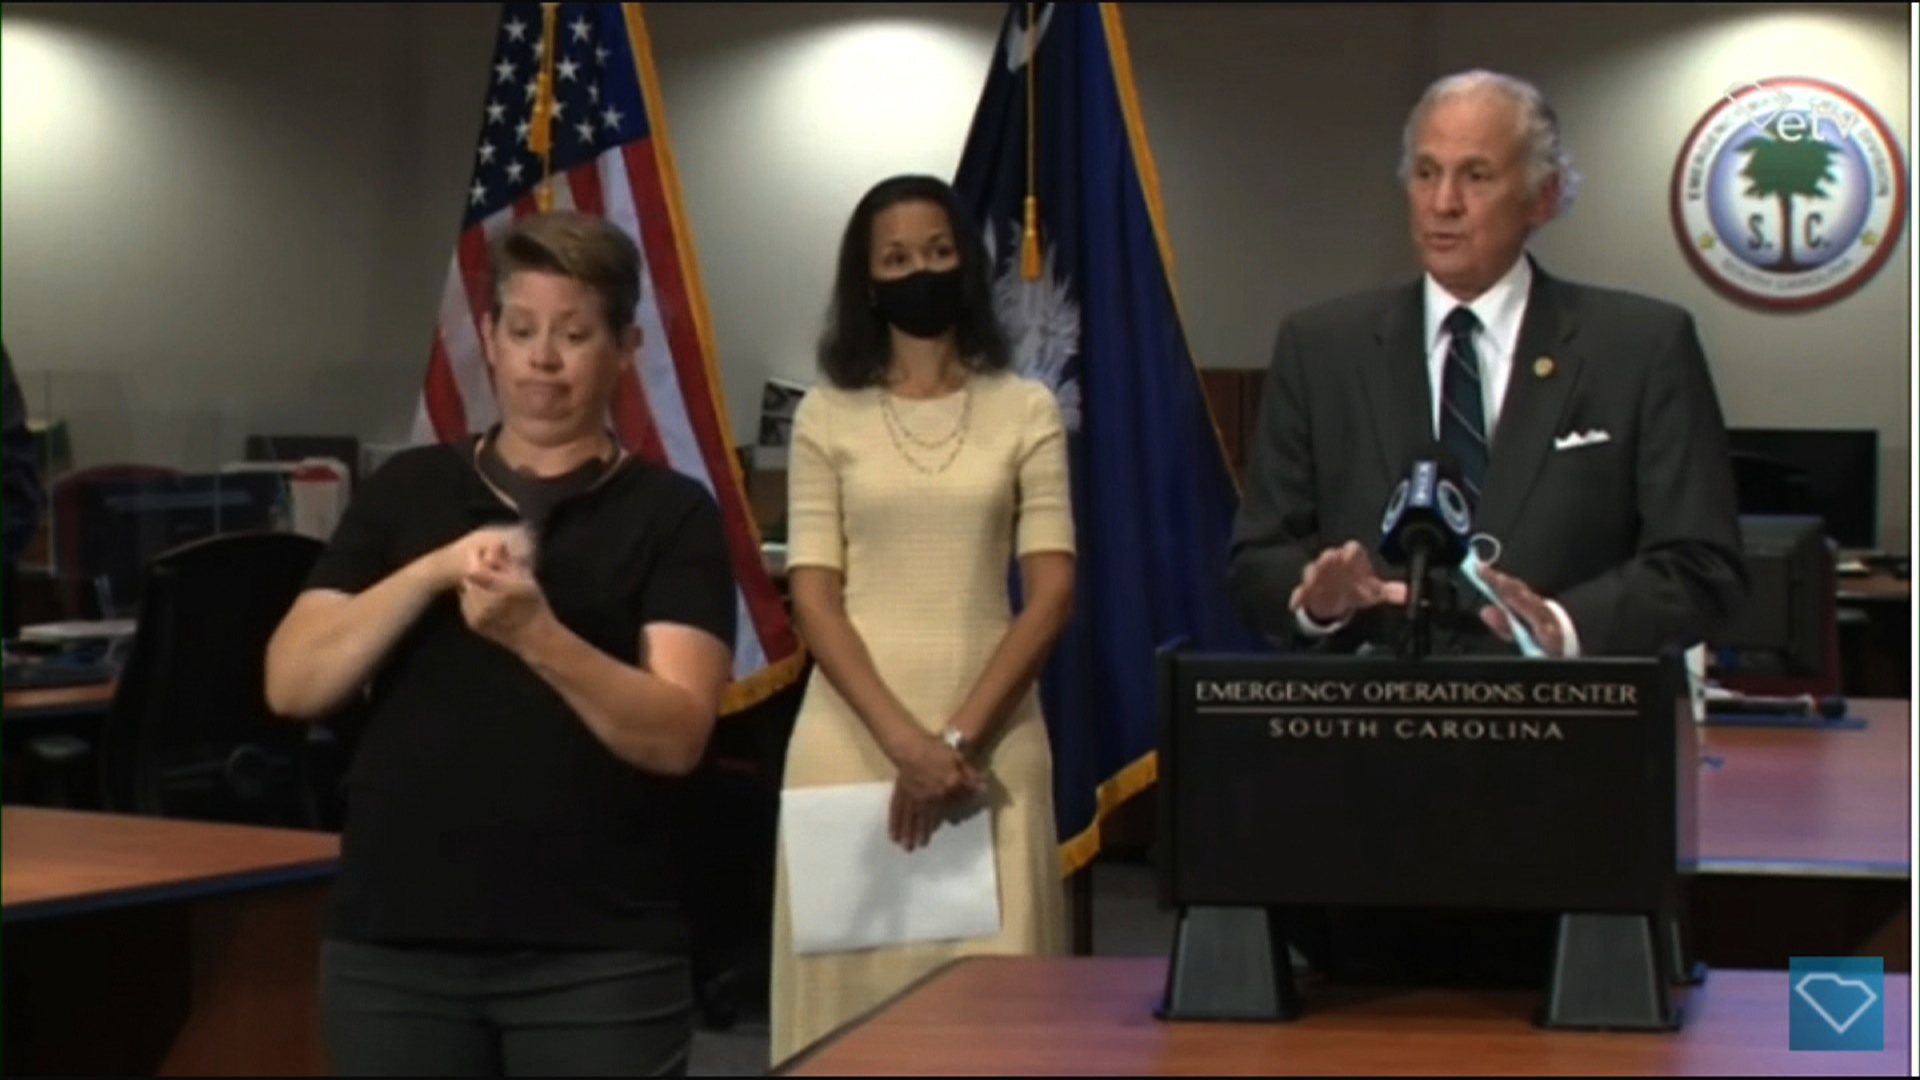 South Carolina Gov. Henry McMaster, right, speaks during a press conference in Columbia, South Carolina, on July 29.